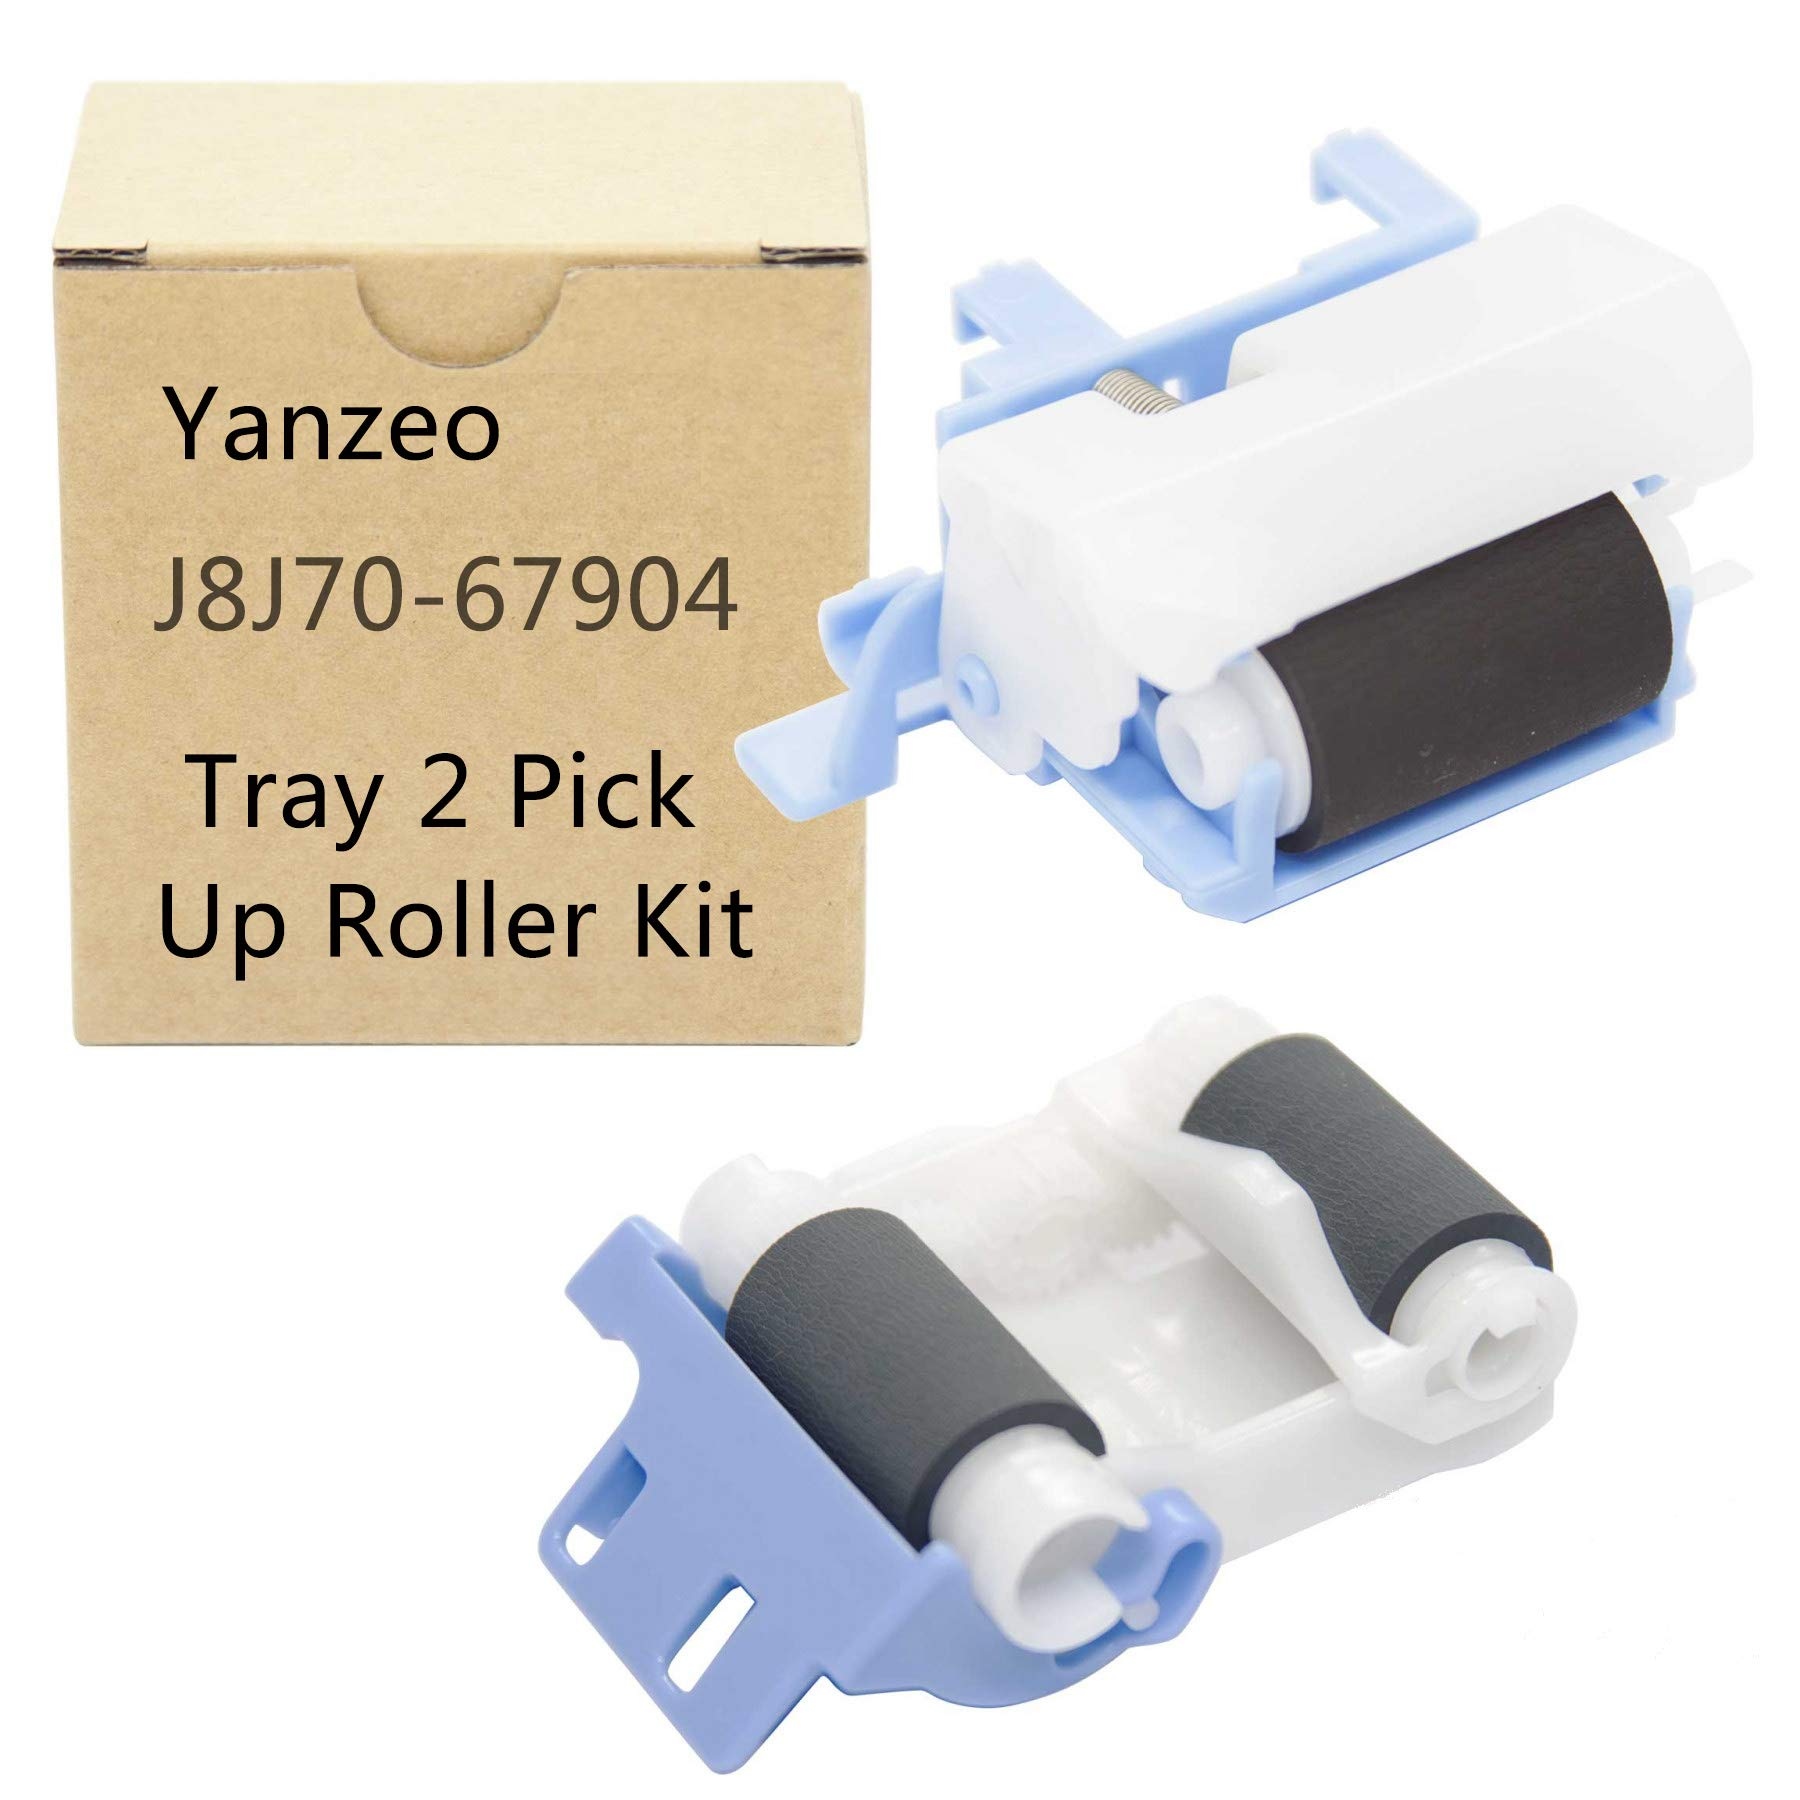 J8J70-67904 RM2-1275 RM2-6772 for HP Laserjet Ent M607 M608 M609 M631 Tray 2 Pick Up Roller by Yanzeo (Image #1)